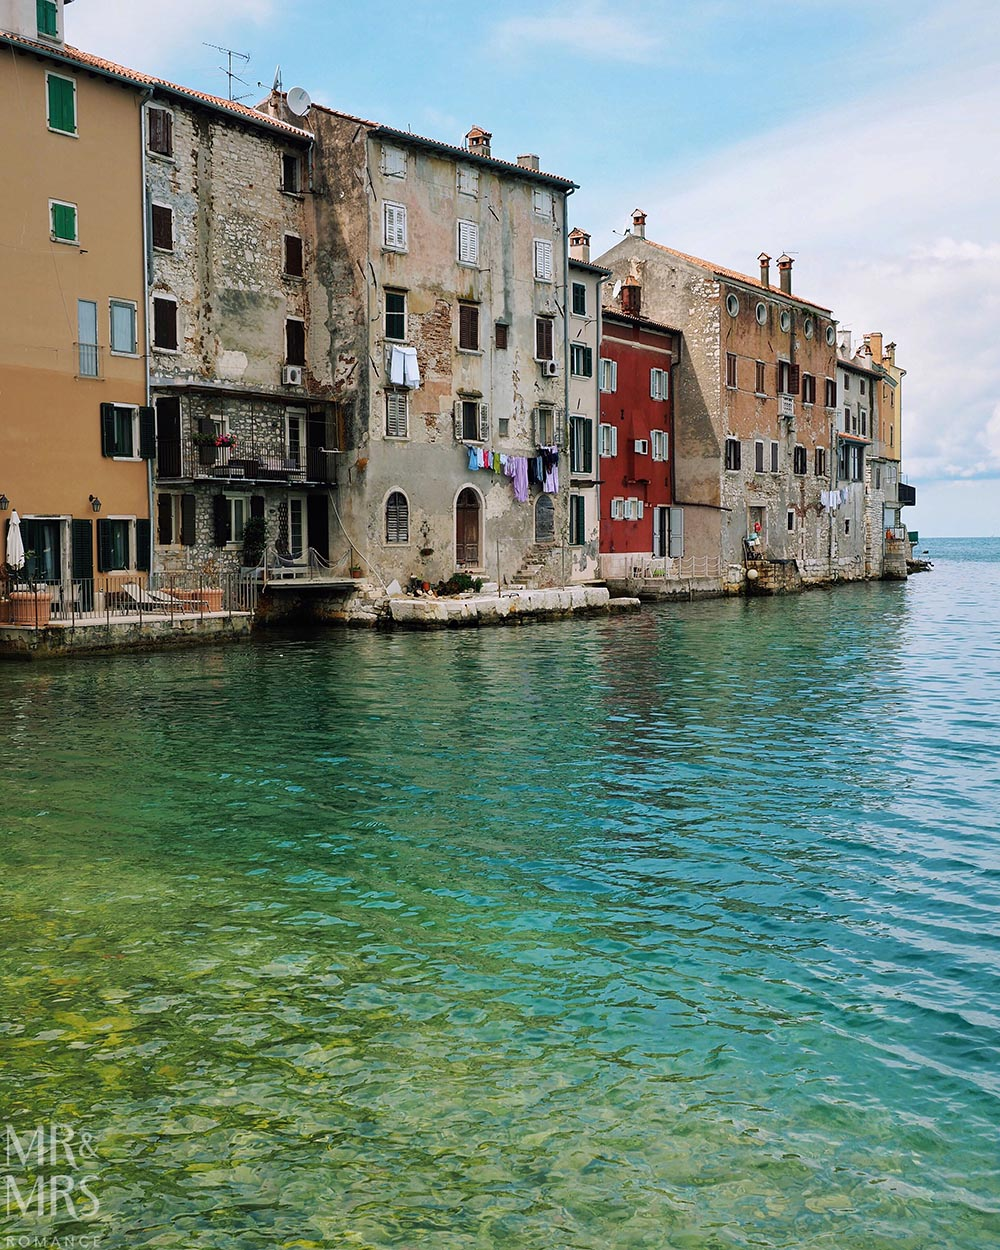 Rovinj, in Istria, Croatia